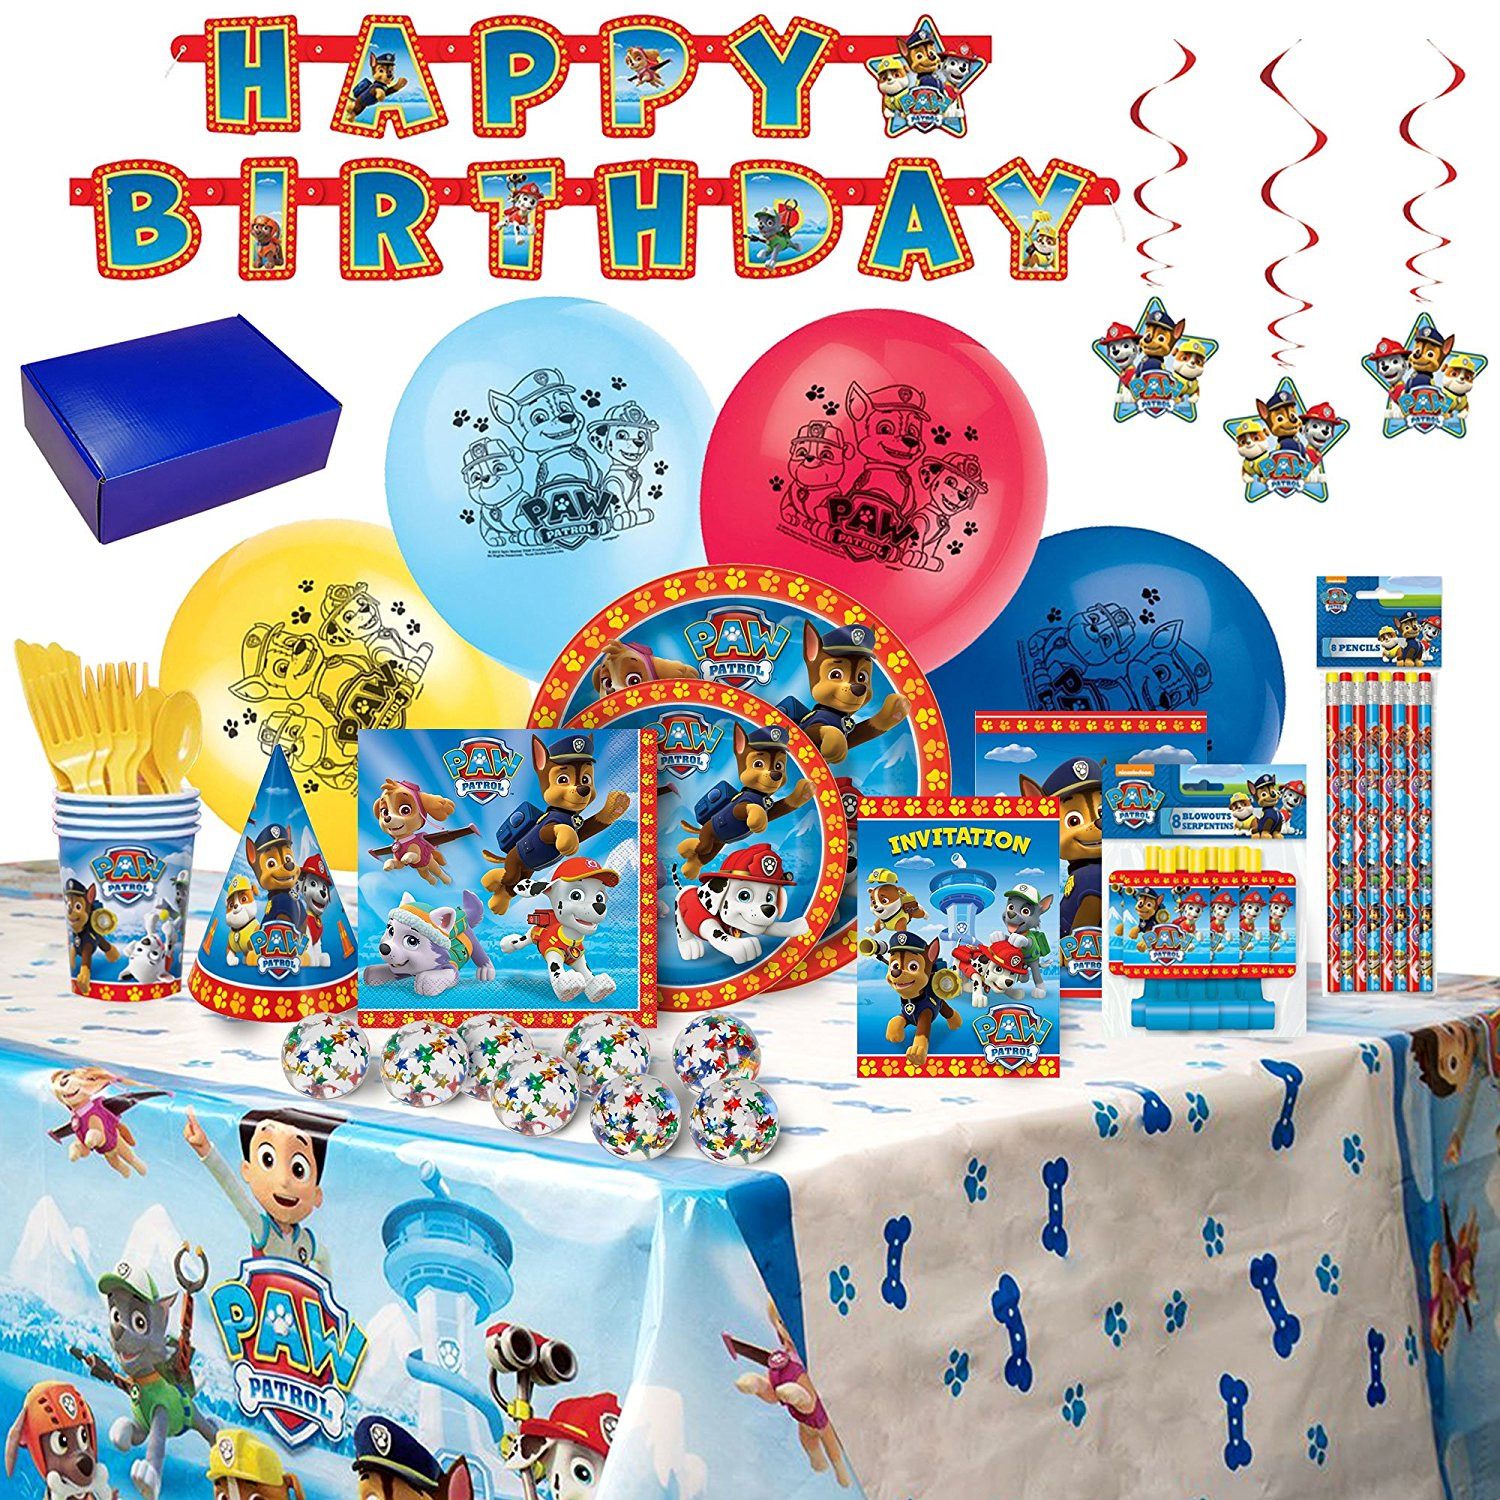 Best ideas about Walmart Birthday Decorations . Save or Pin Paw Patrol Birthday Party Supplies and Decorations 8 Now.